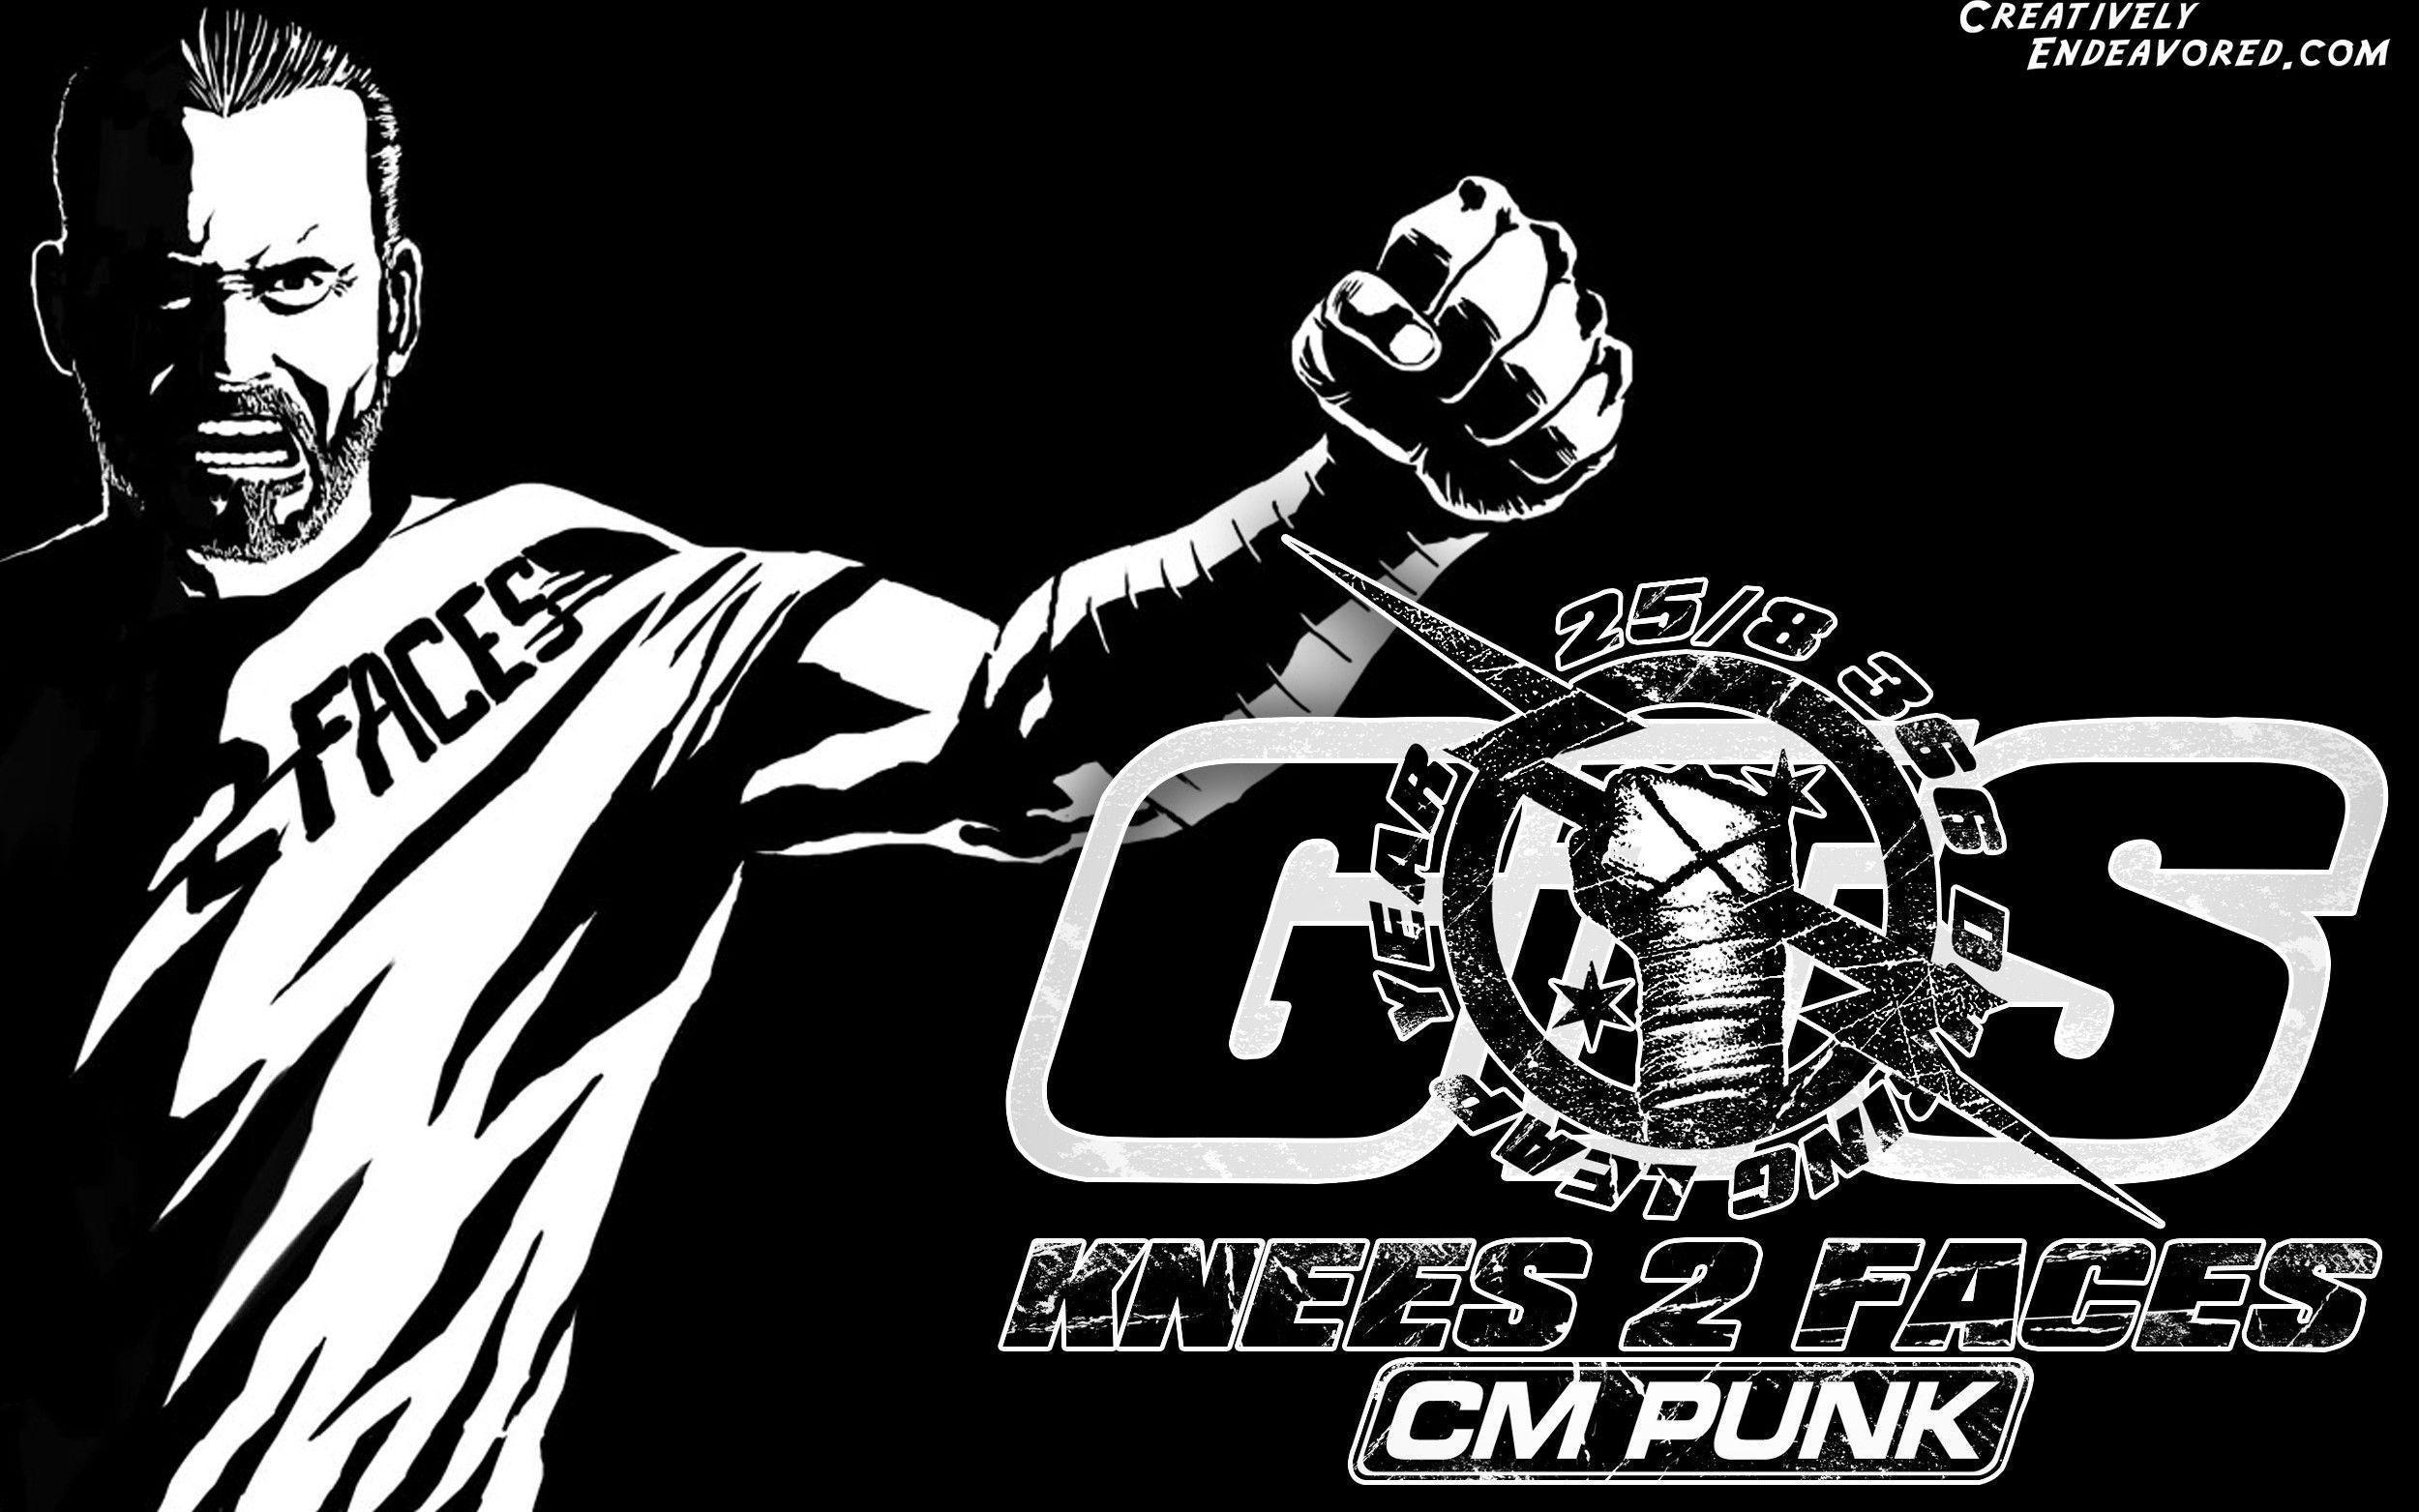 Cm Punk Wallpapers Creatively Endeavored